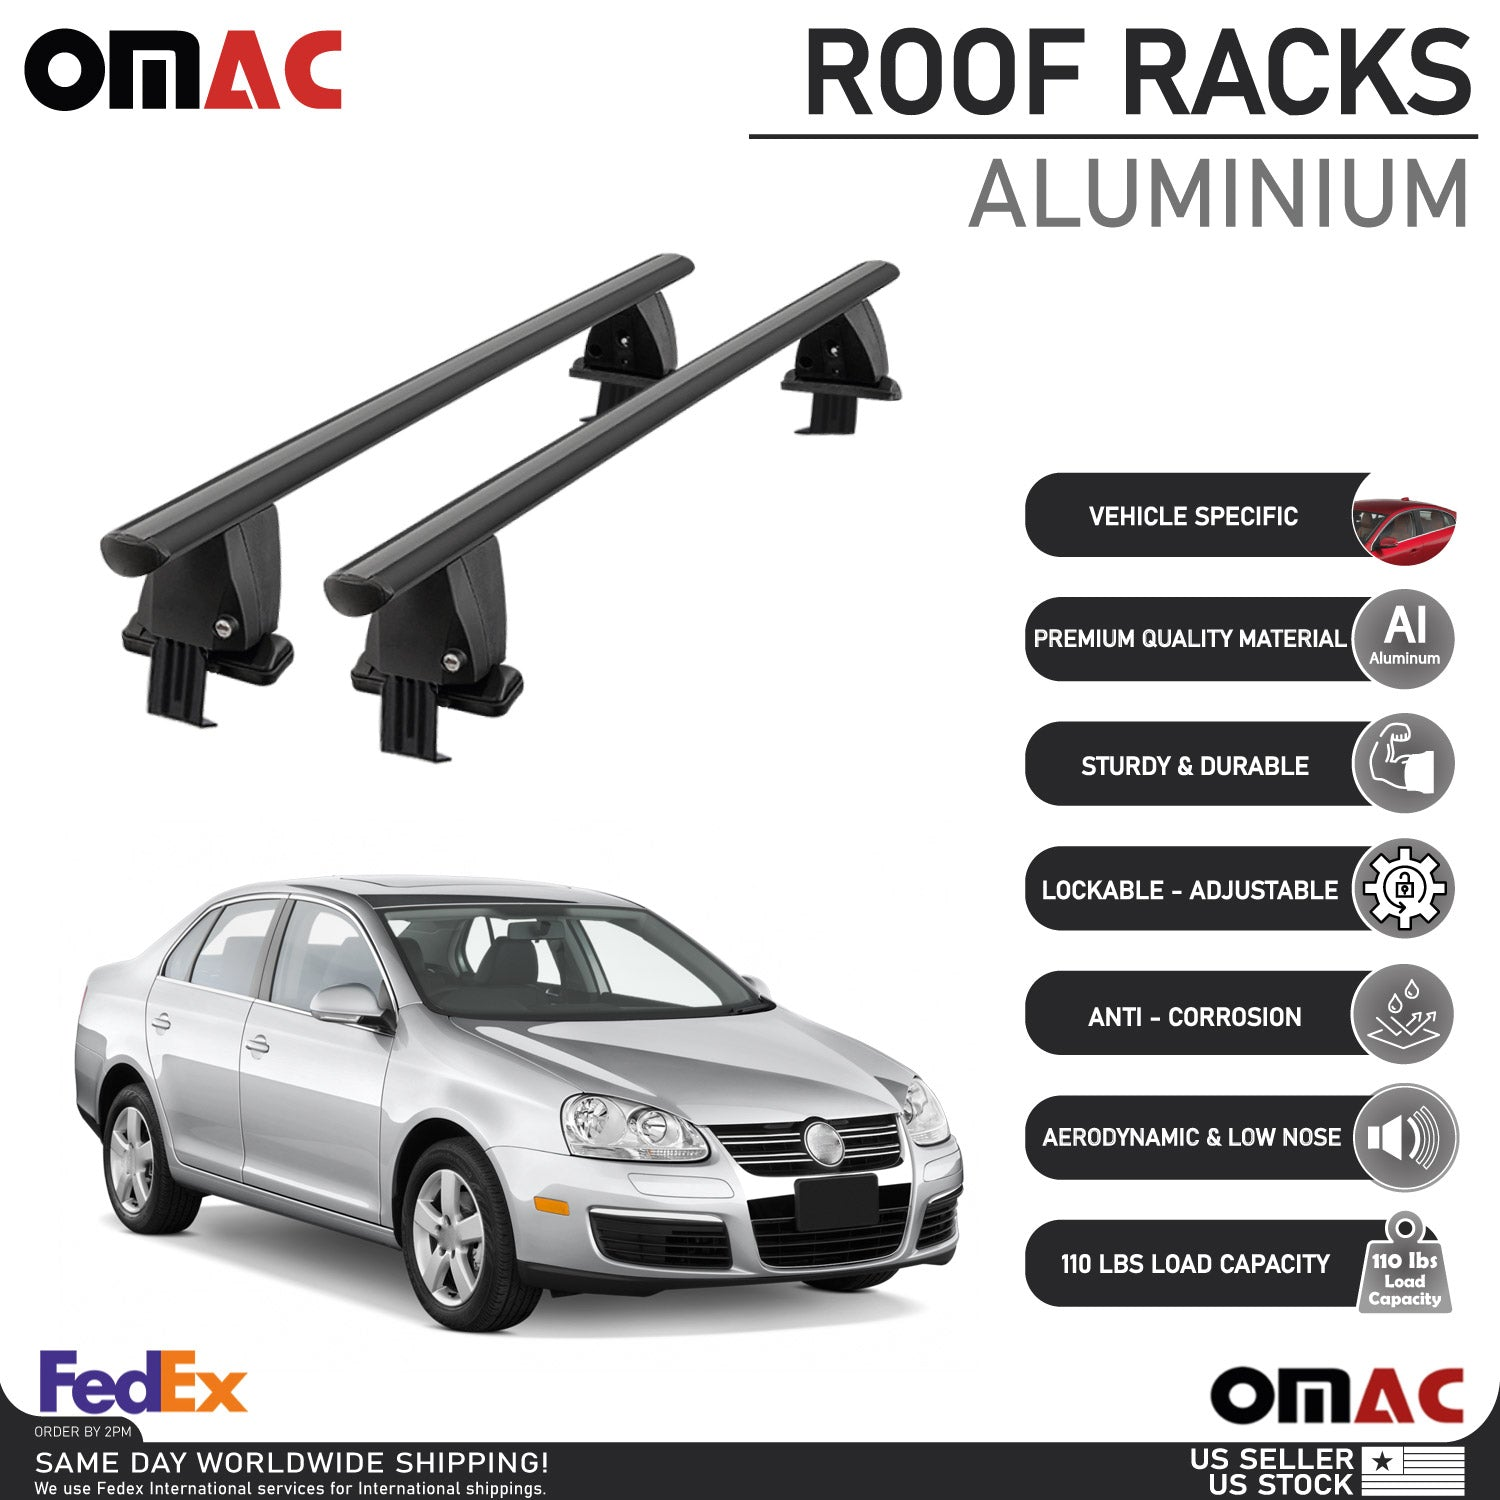 Fits VW Jetta Sedan (A5) 2005-2010 Smooth Roof Rack Cross Bar Carrier Rail Black